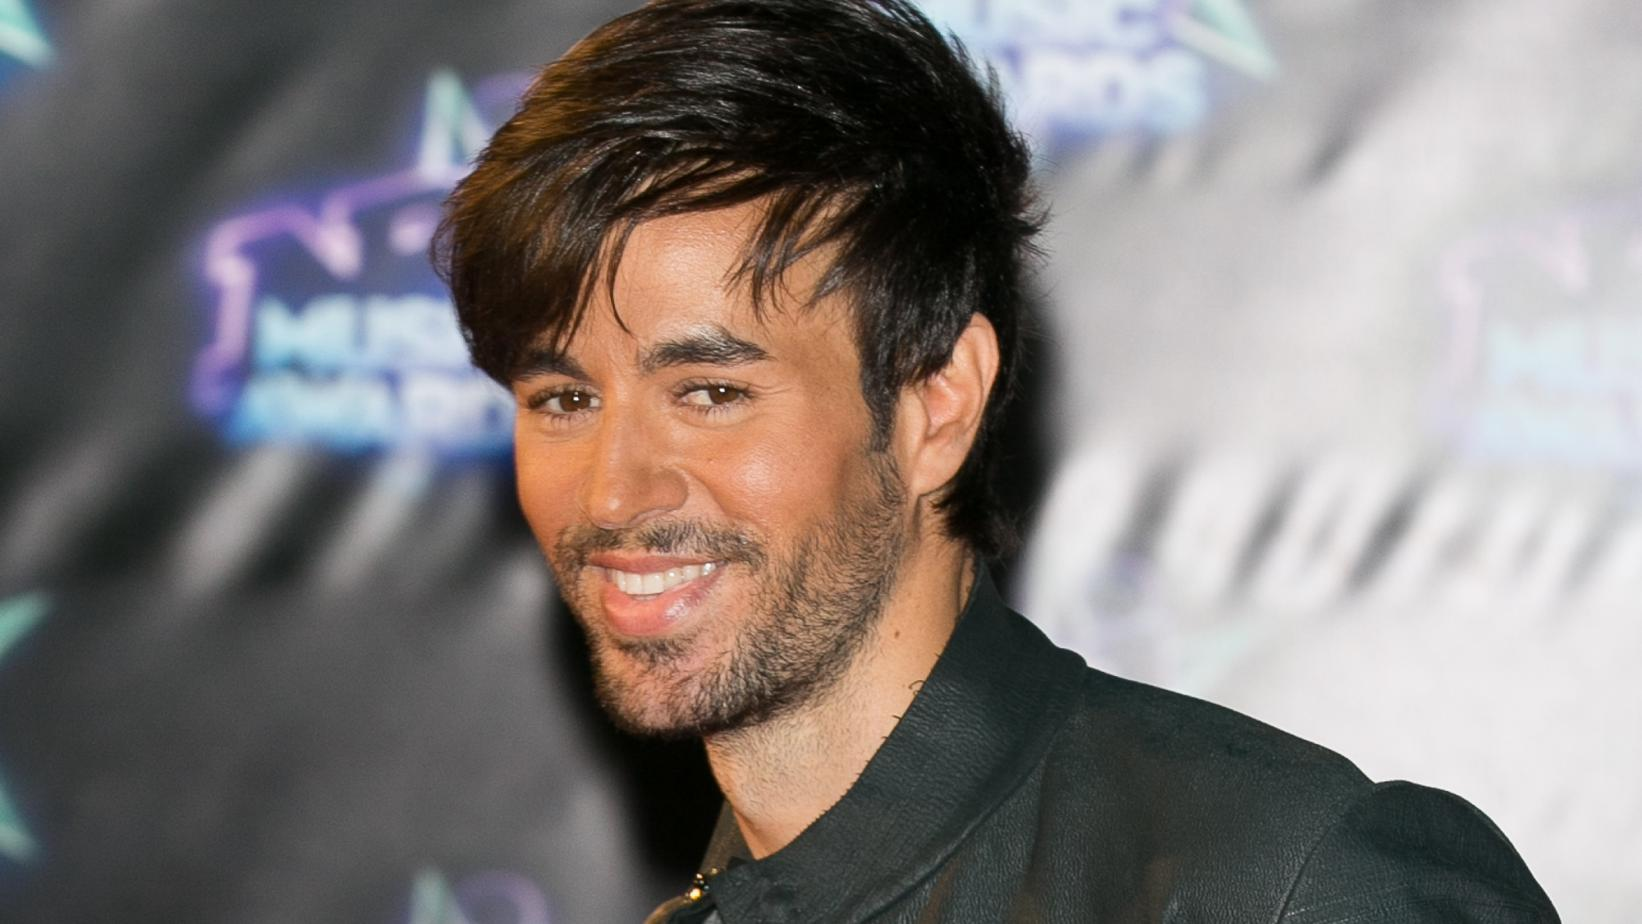 Enrique Iglesias's Net Worth: His Career and Life Lessons